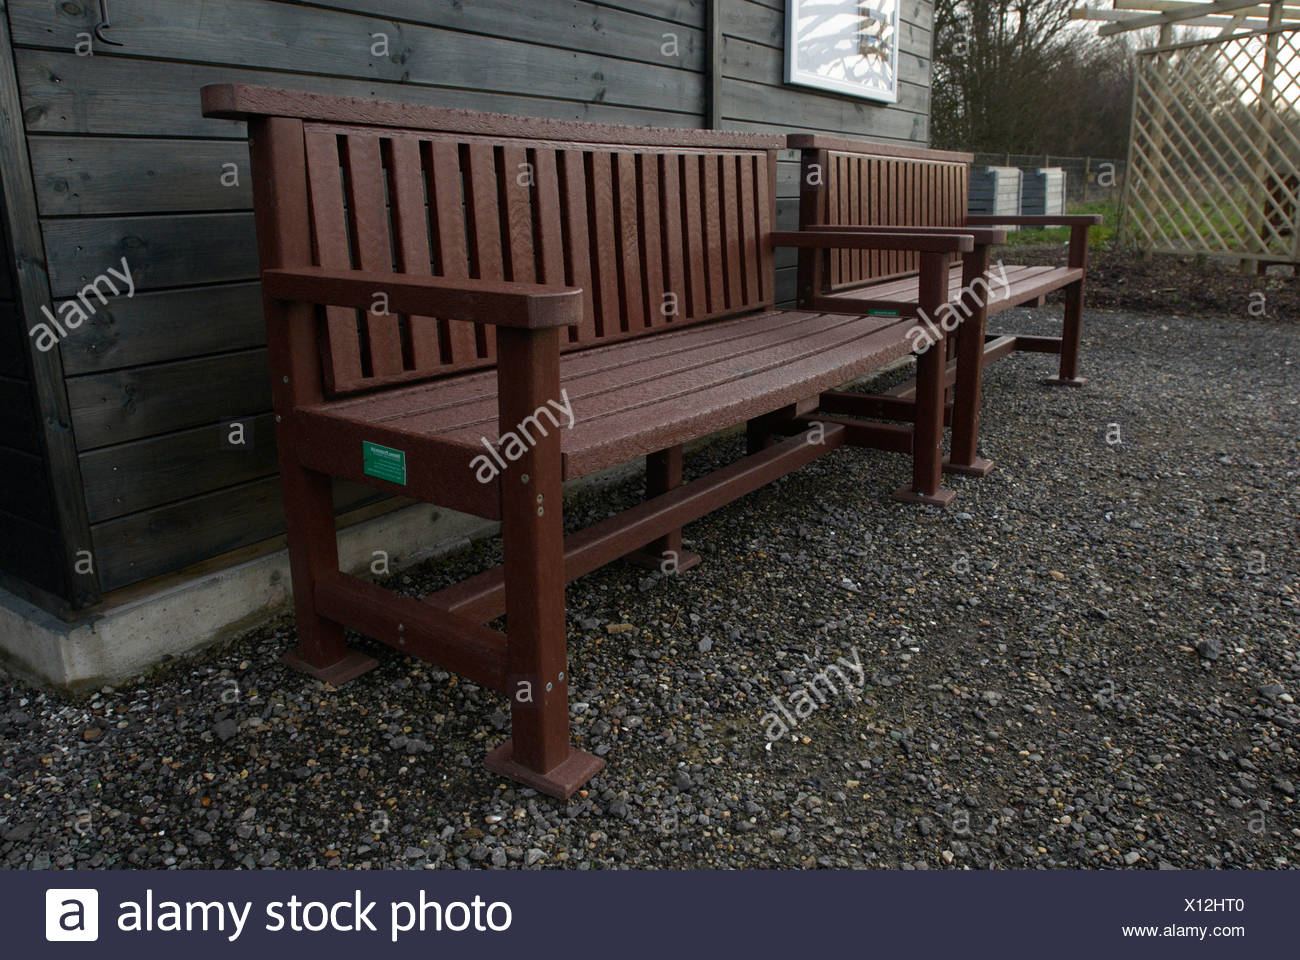 Remarkable Recycled Plastic Park Benches Stock Photo 276038448 Alamy Creativecarmelina Interior Chair Design Creativecarmelinacom